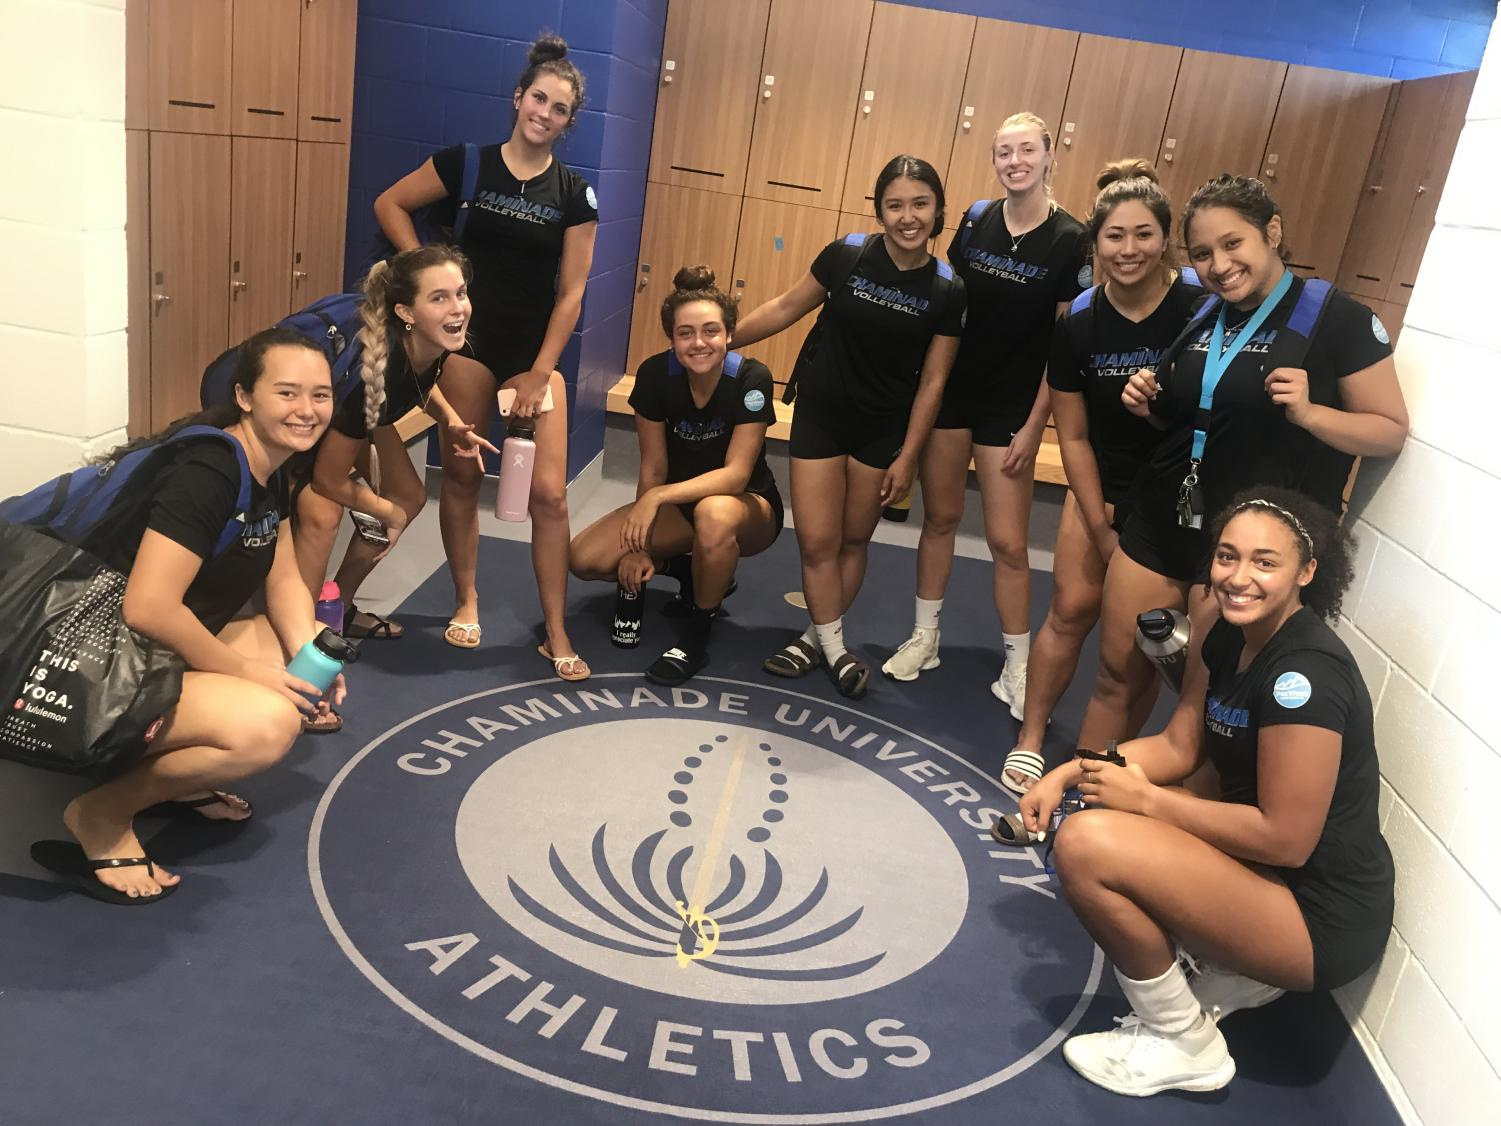 The CUH women's volleyball team enjoys the tour of the locker room, which they will begin using in August.